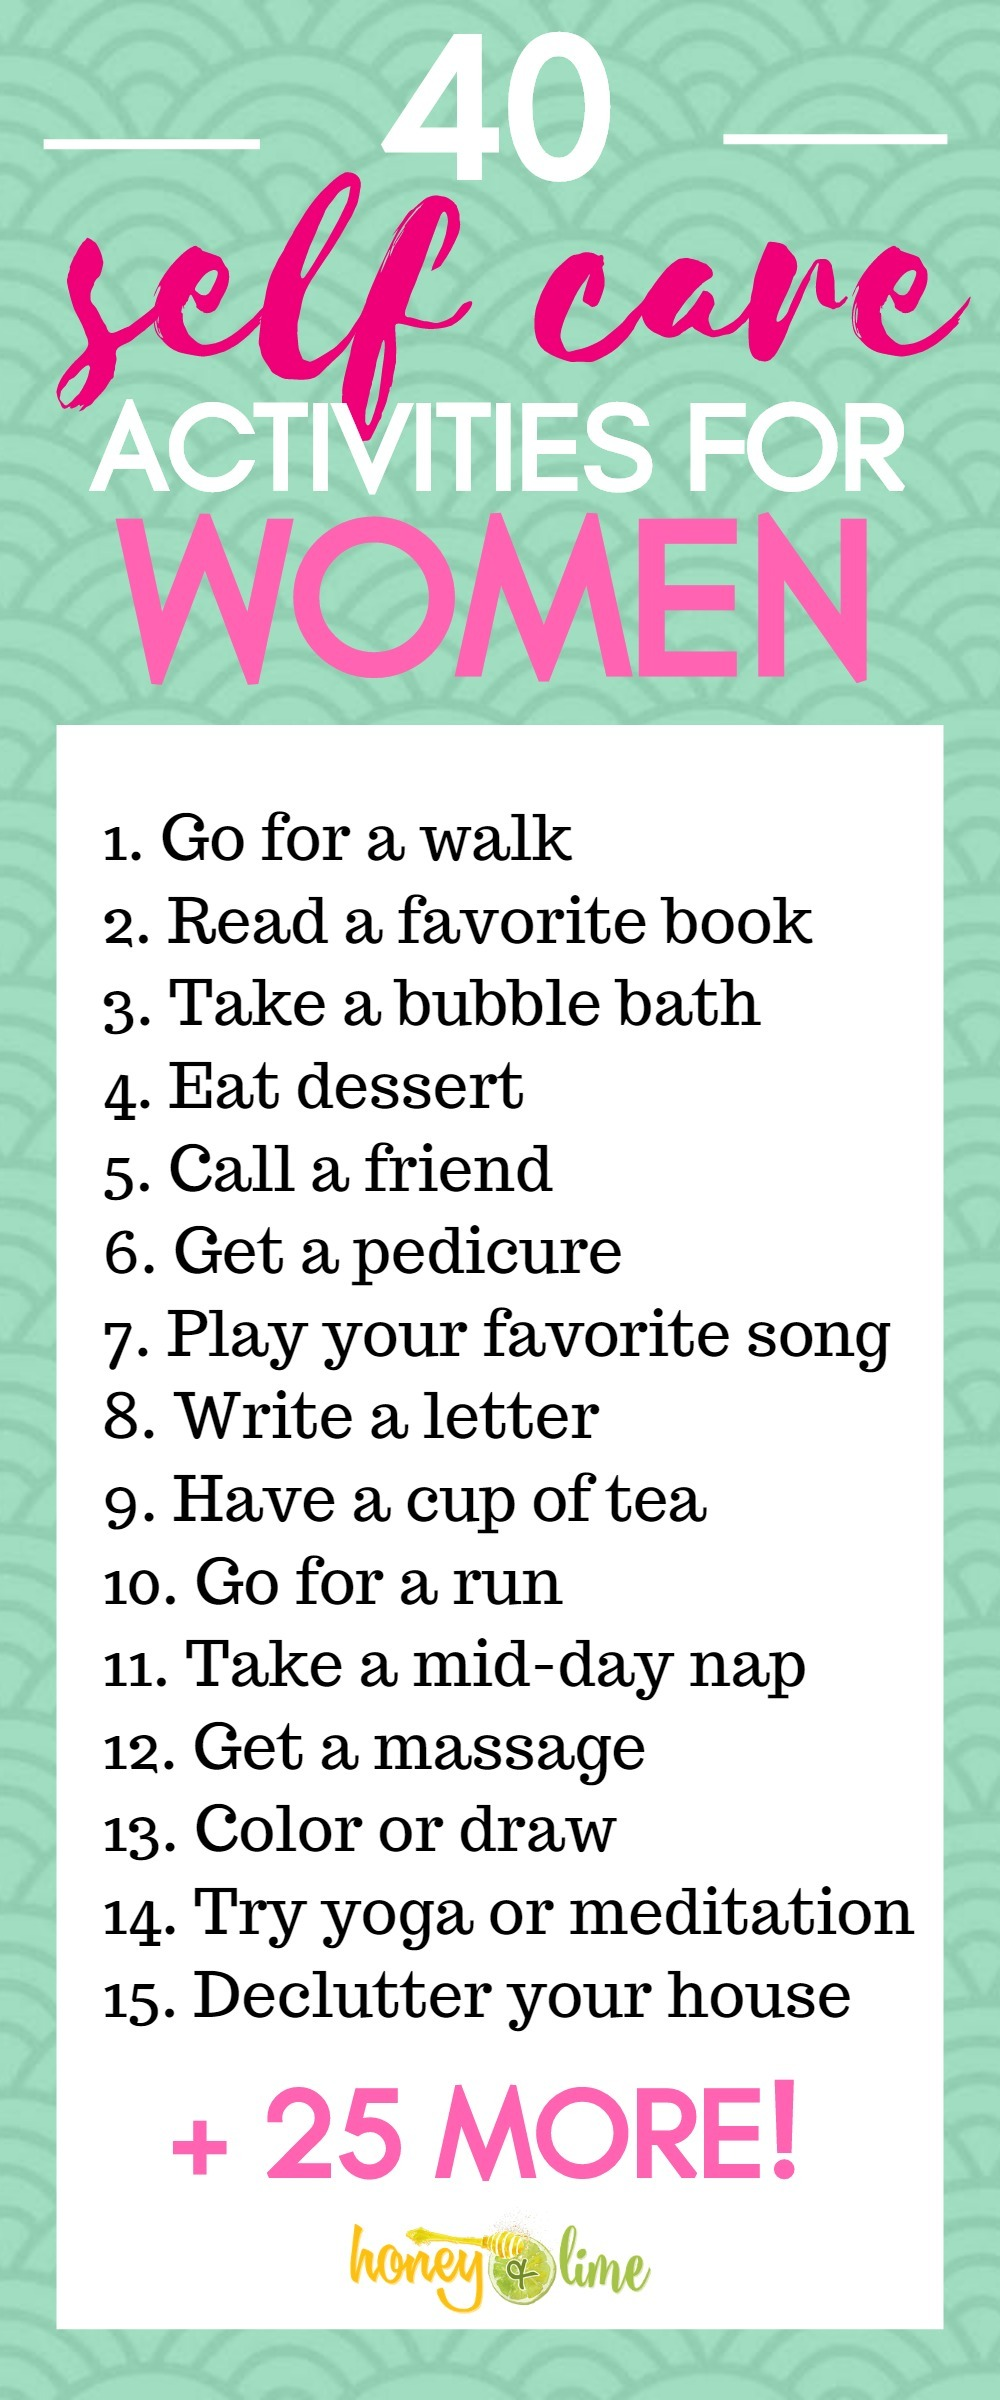 Self care activities for women